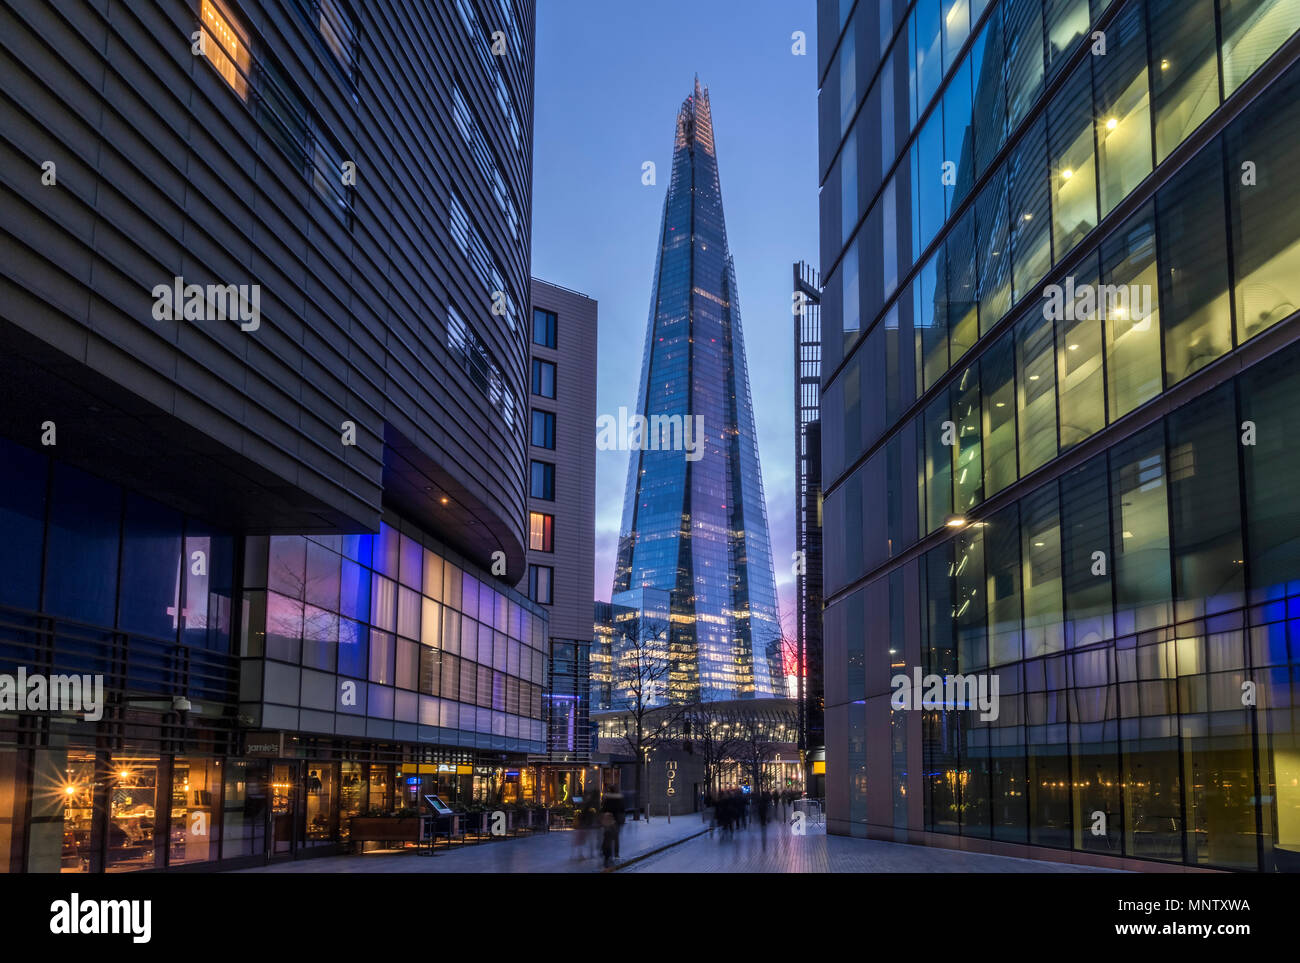 Le Shard et gratte-ciel de bureaux modernes, Southwark, London, England, UK Photo Stock